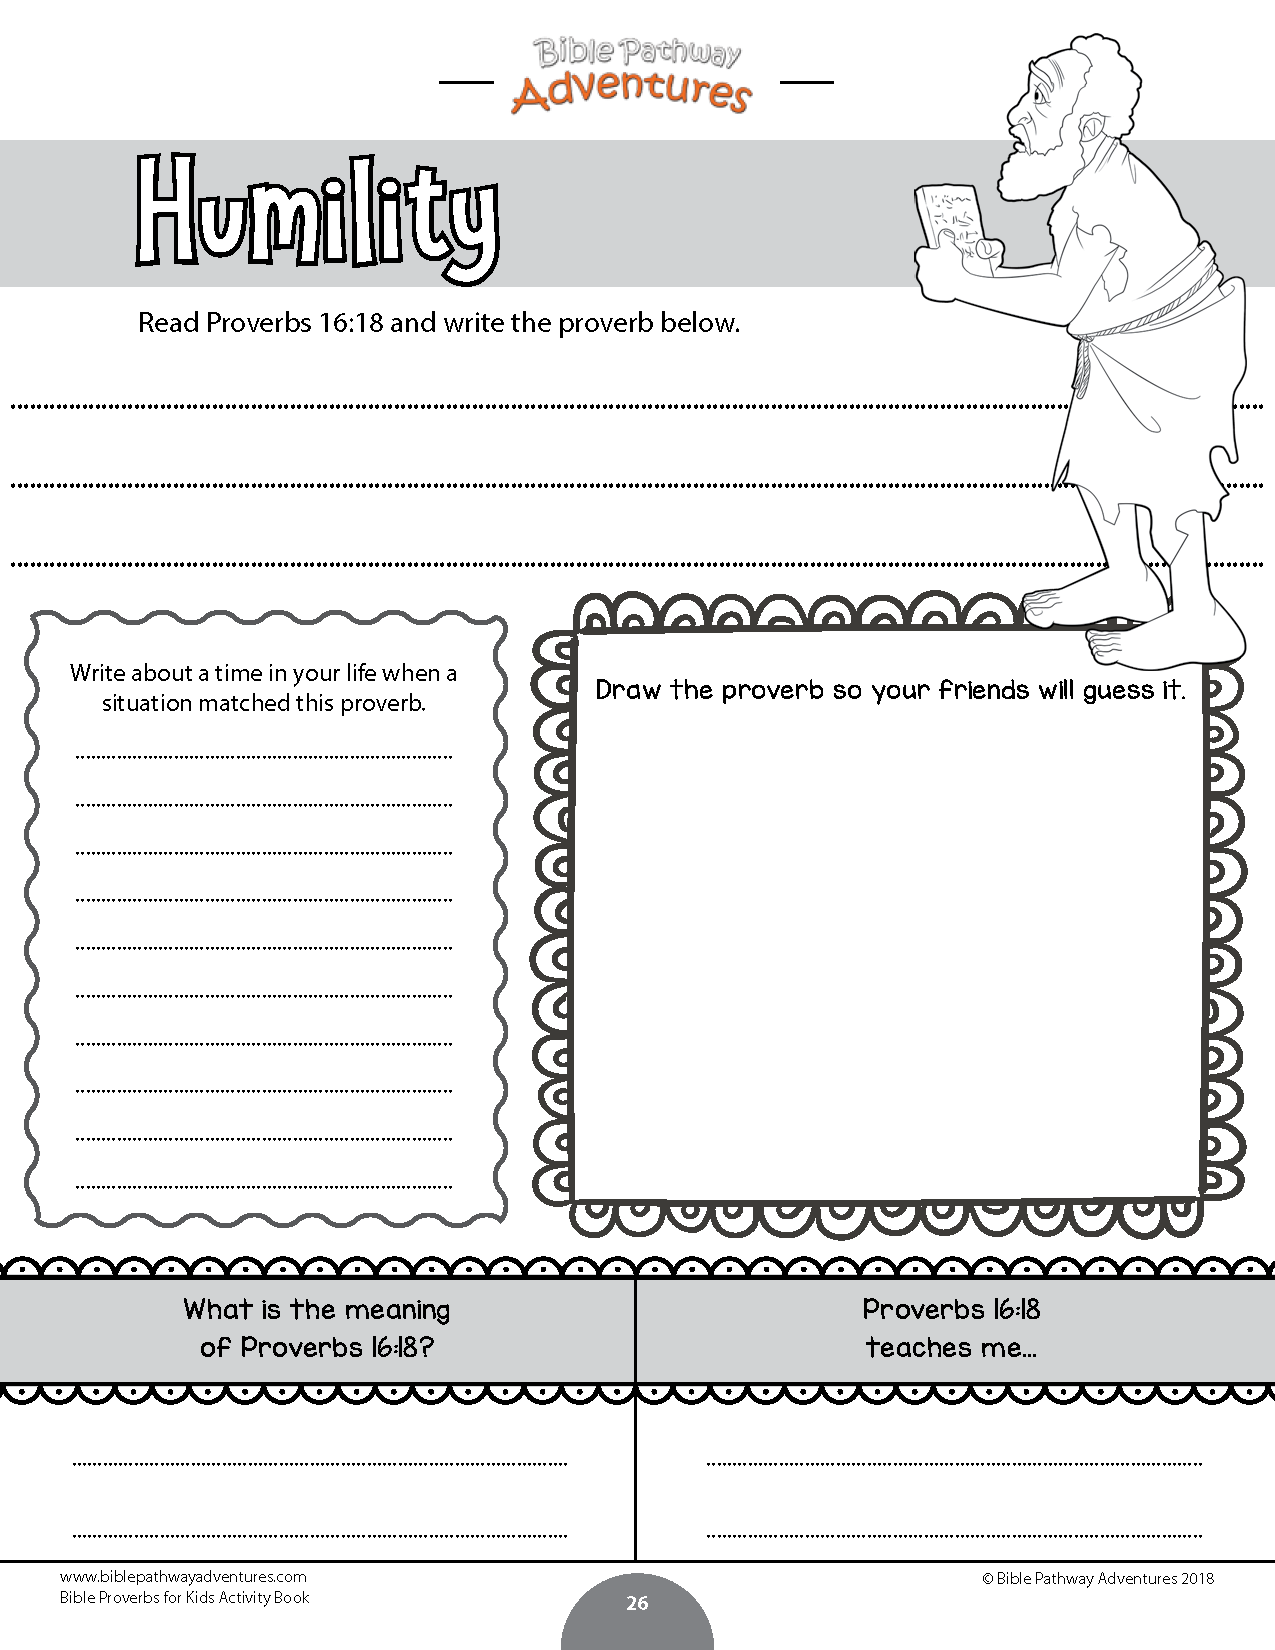 Bible Proverbs Activity Worksheet For Kids Humility